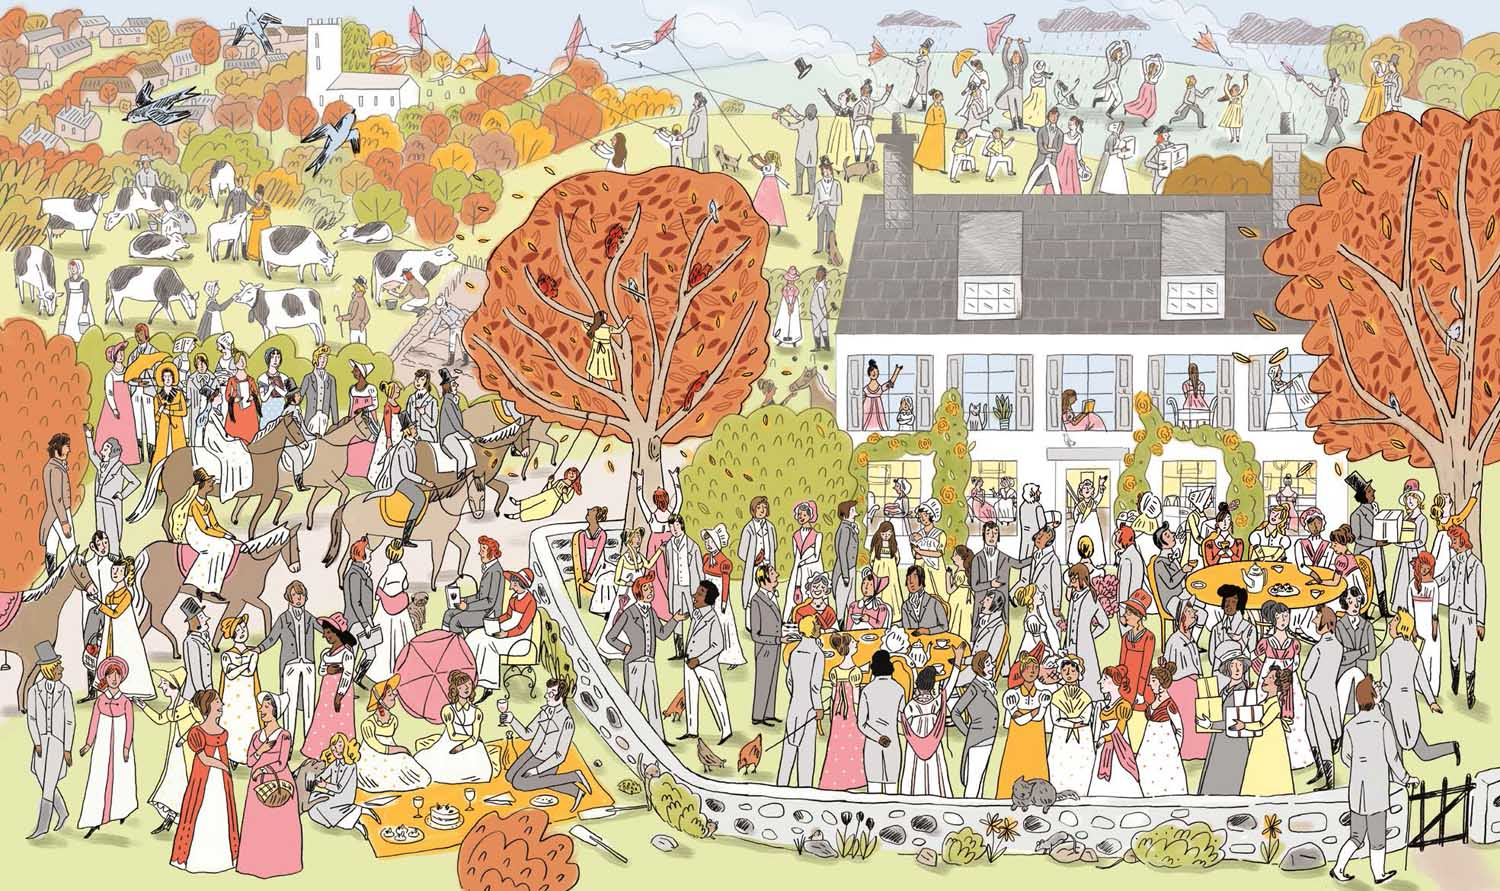 Where's Jane? Illustration by Katy Dockrill.